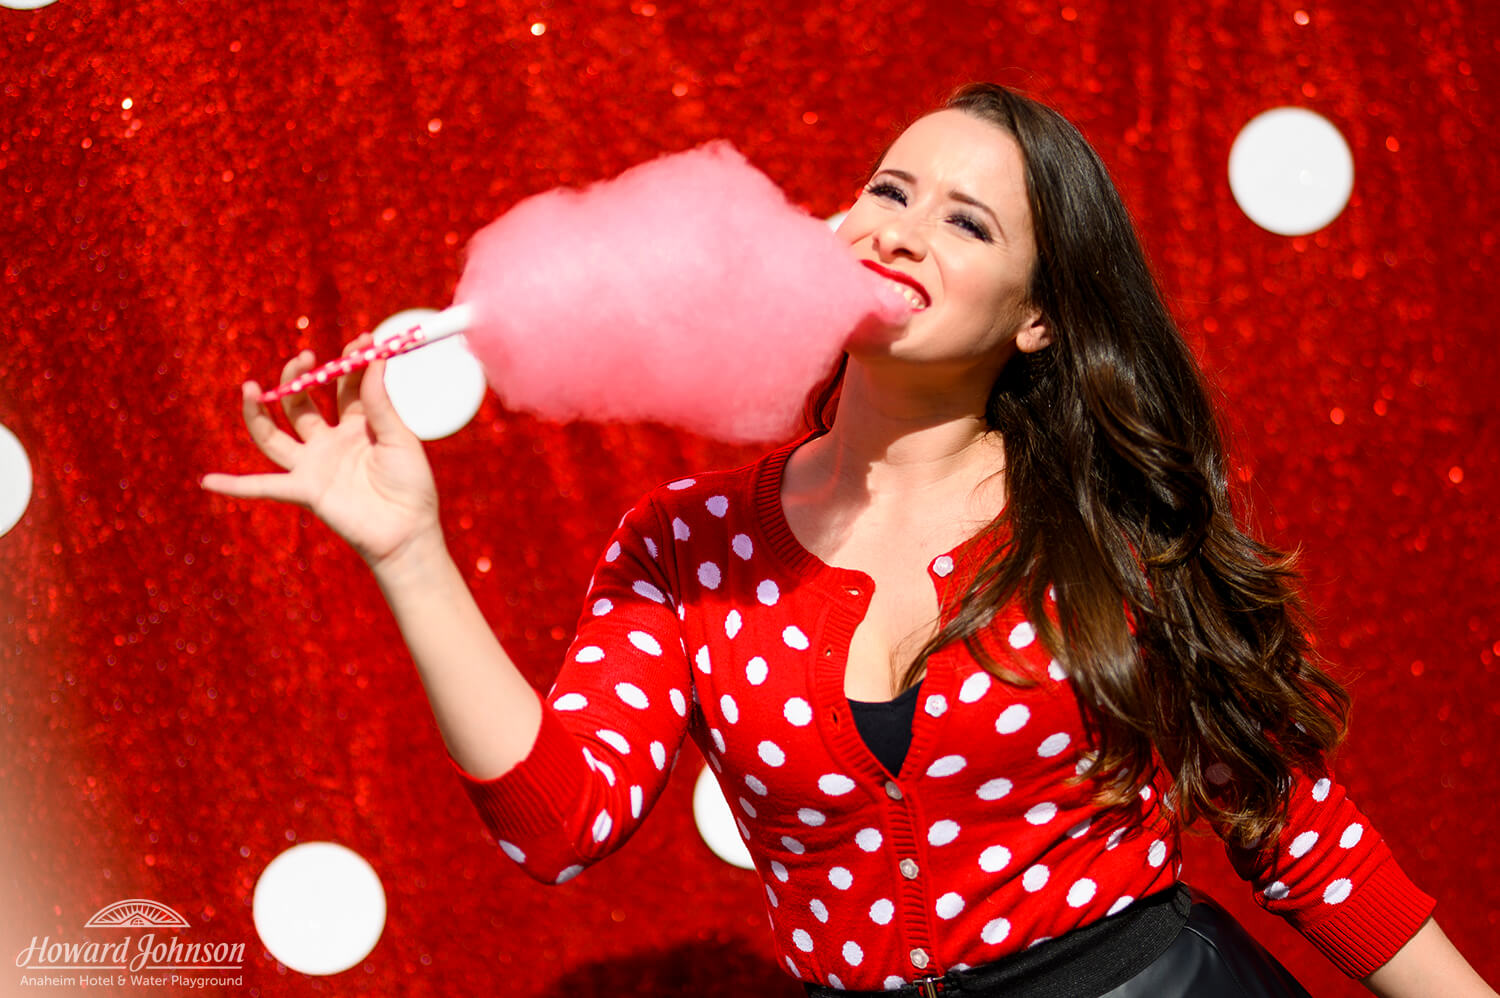 A young woman wearing a polka dot sweater poses in front of a polka dot picture background with pink cotton candy in her mouth